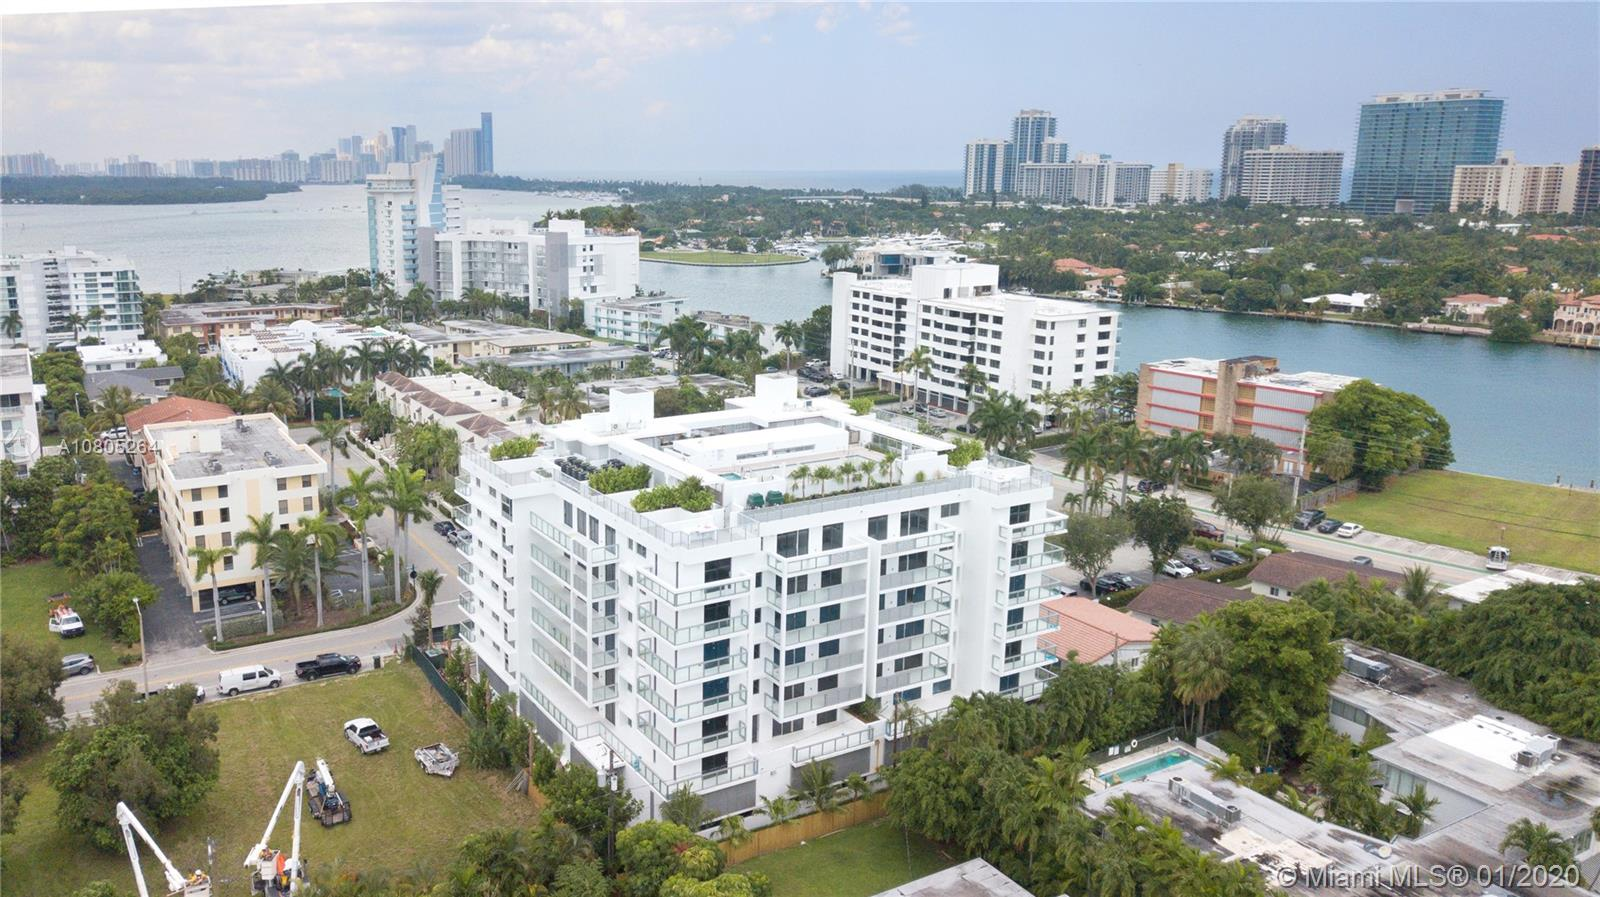 Bay Harbor One, a selection of distinctive condominium residences situated in the enclave of Bay Harbor Island in close proximity to the Bal Harbour Shops, restaurants, and the beach. A modern, yet timeless architectural design; these spacious residences are delivered with designer kitchens and baths, smart home technology, and expansive terraces with glass railings. The building offers an array of amenities with features including 24-hour concierge services, rooftop pool, a multipurpose area and residence storage units. Private cabanas with outdoor kitchens are also available. Only a limited inventory remains, so call today for your personal tour!